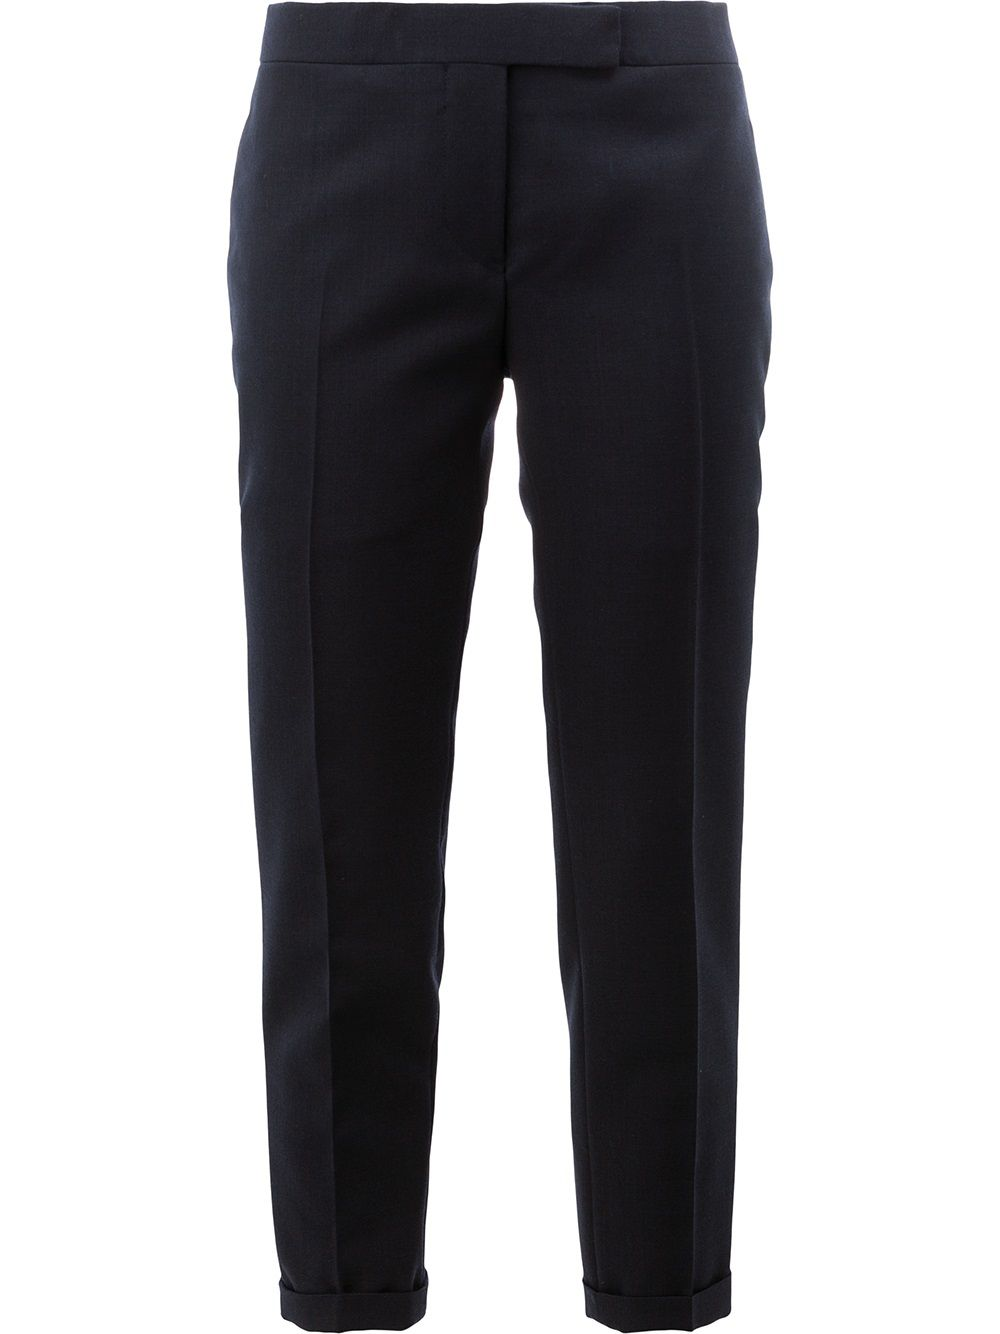 Thom Browne Lowrise Skinny Trousers In Navy 2-Ply Wool Fresco - Blue von Thom Browne